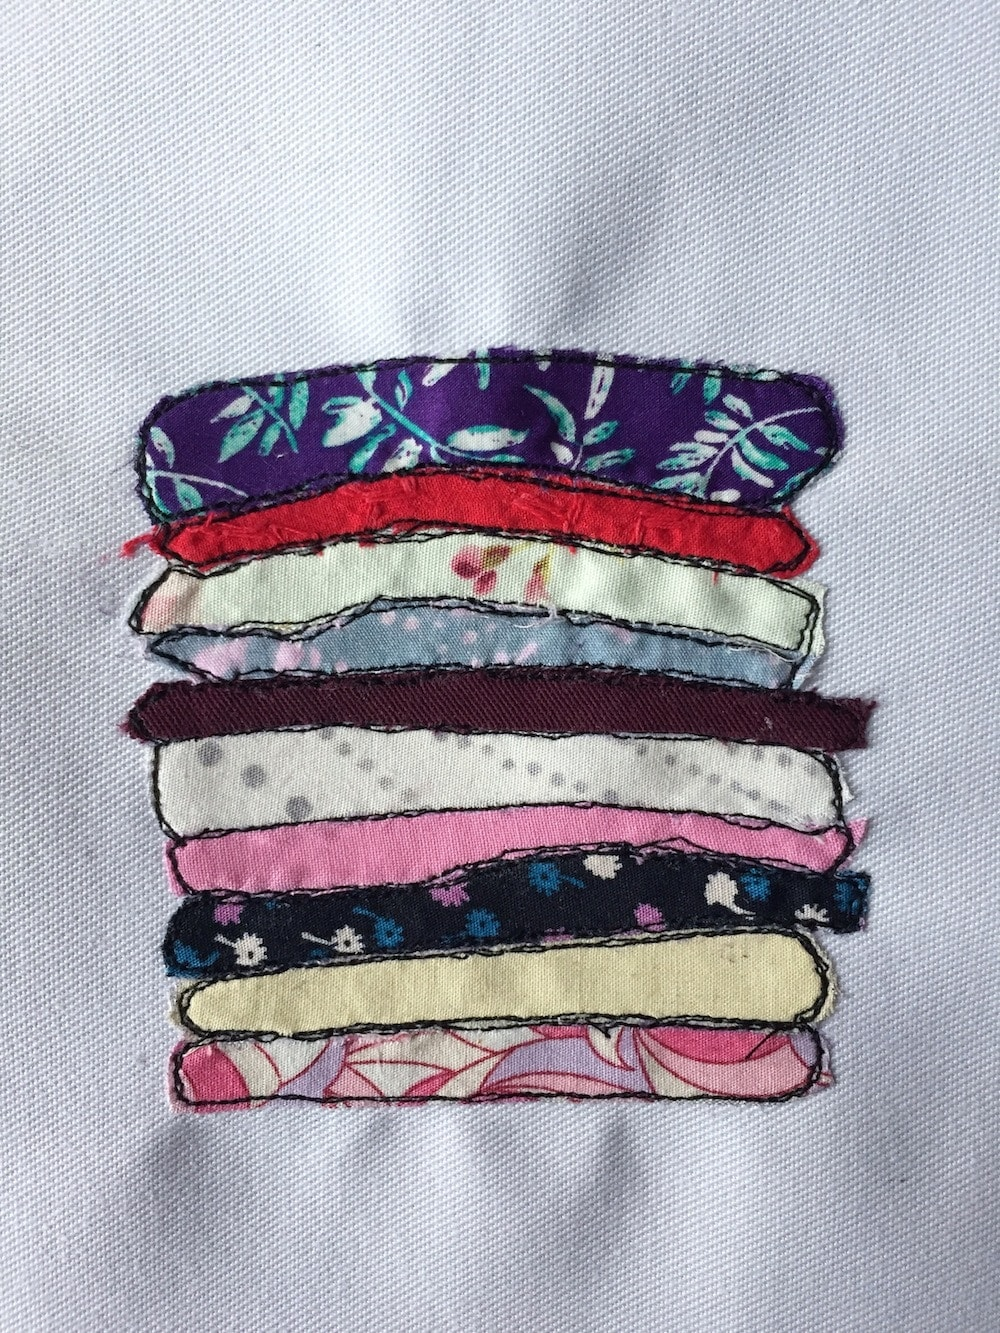 Free Motion Embroidery 3.JPG